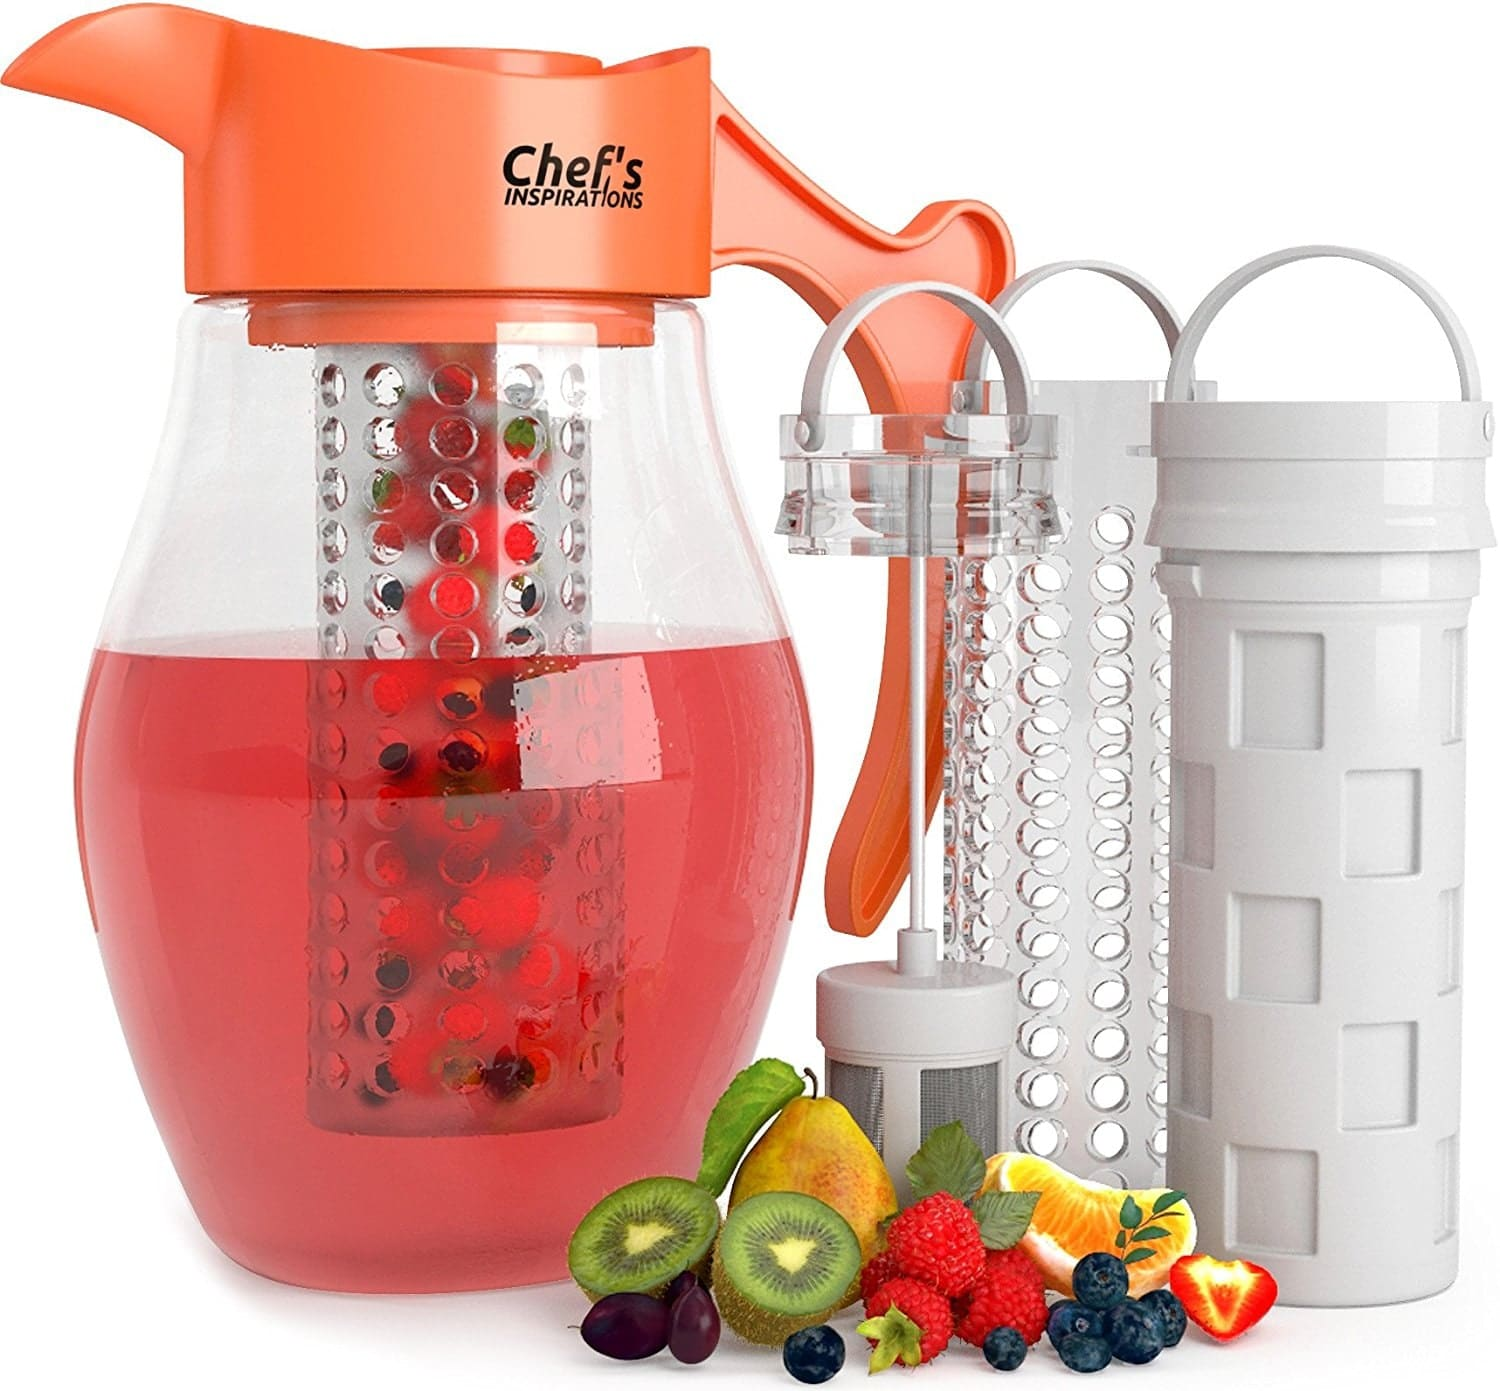 Chef's INSPIRATIONS 3 Core Infusion Water Pitcher. 3 Quart (2.8 Liters).